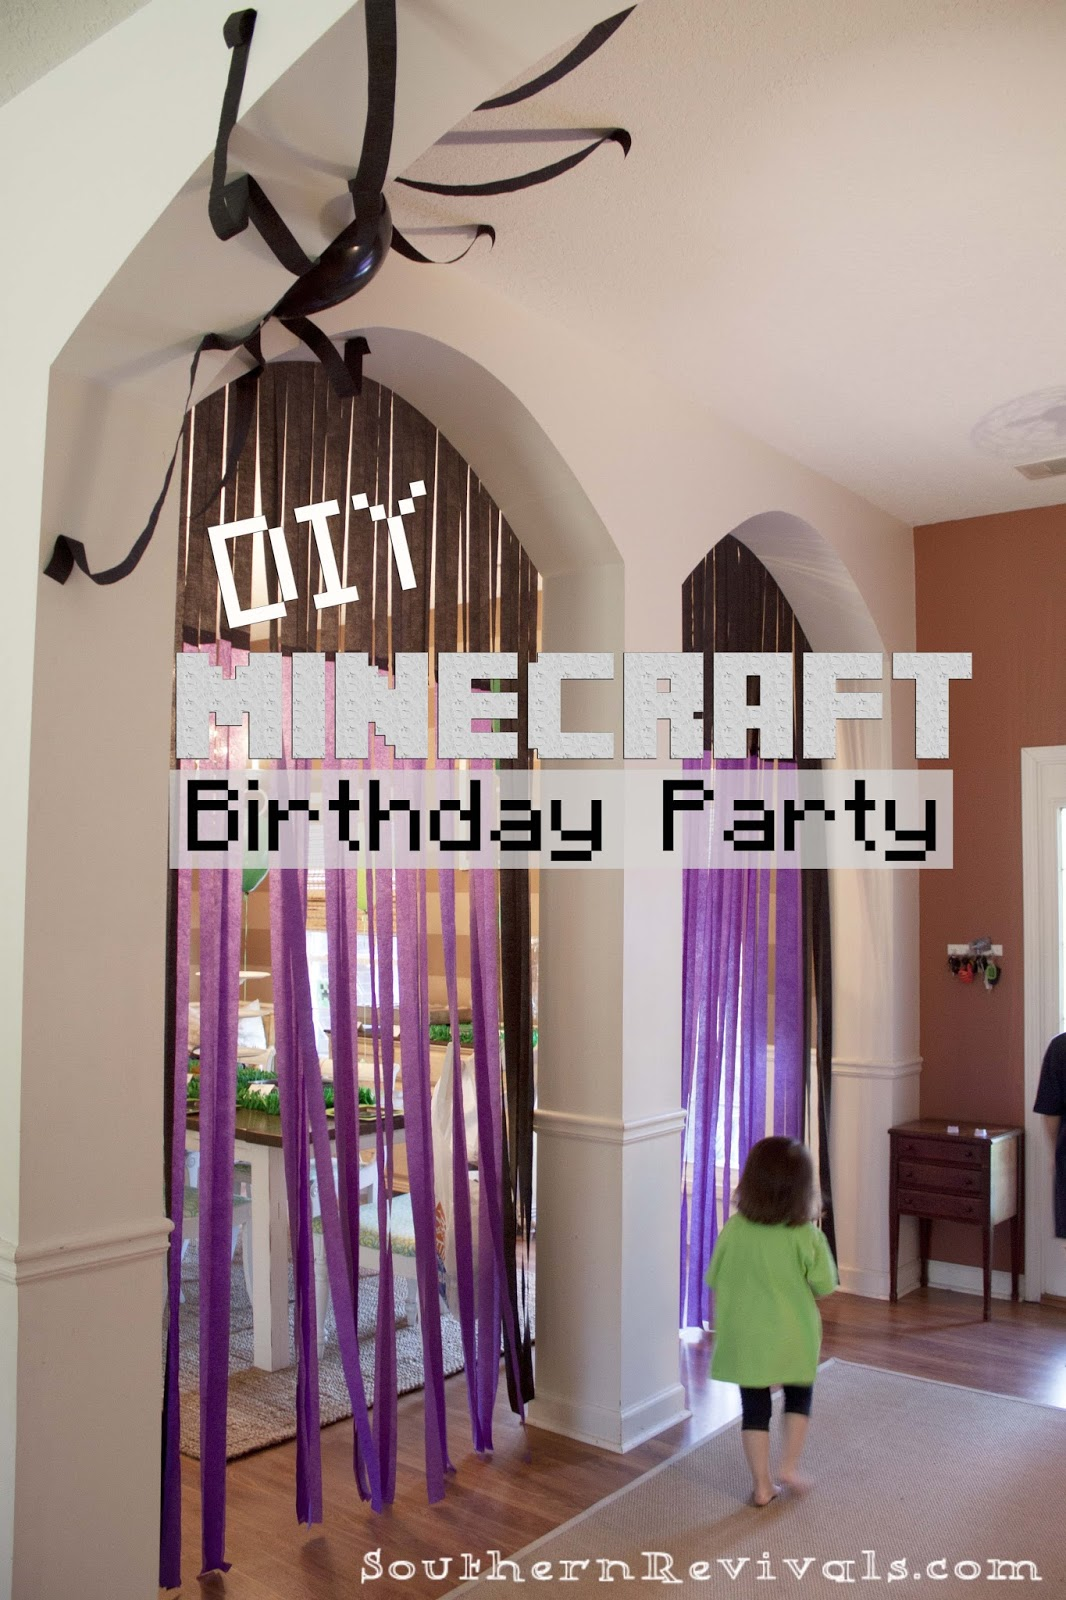 diy minecraft birthday party craft ideas party favors printables